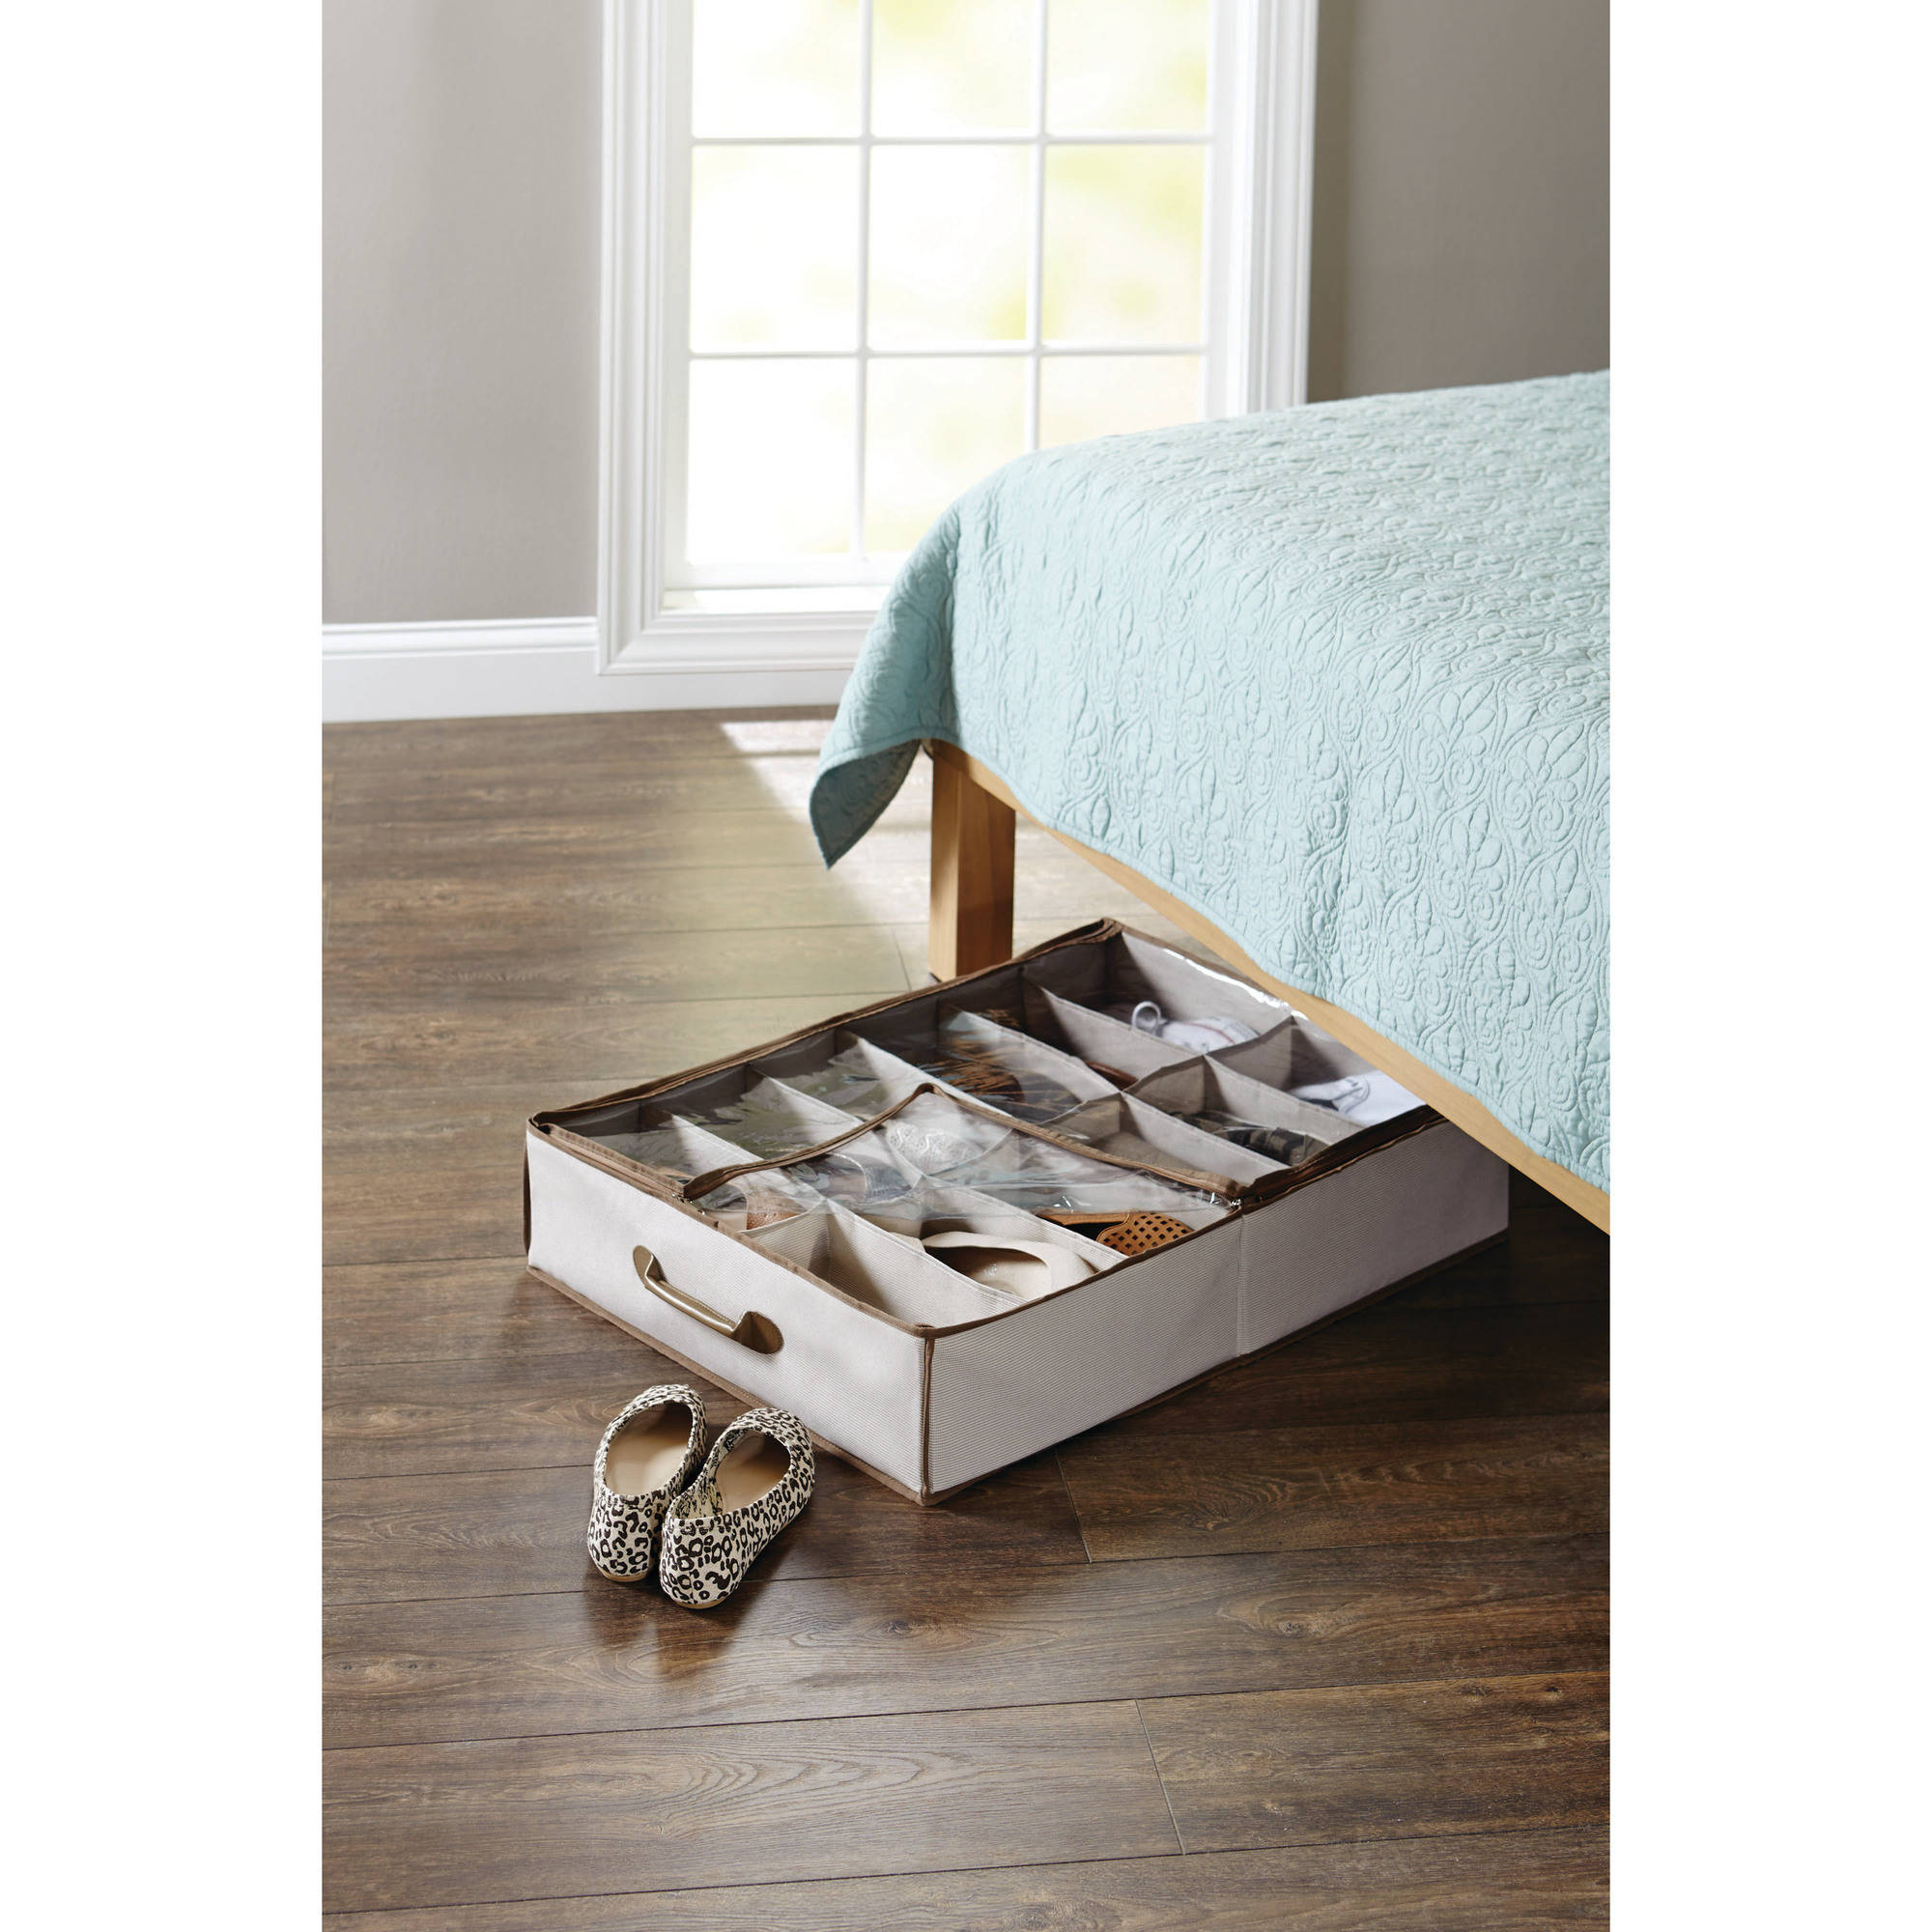 Better Homes and Gardens Underbed Shoe Organizer